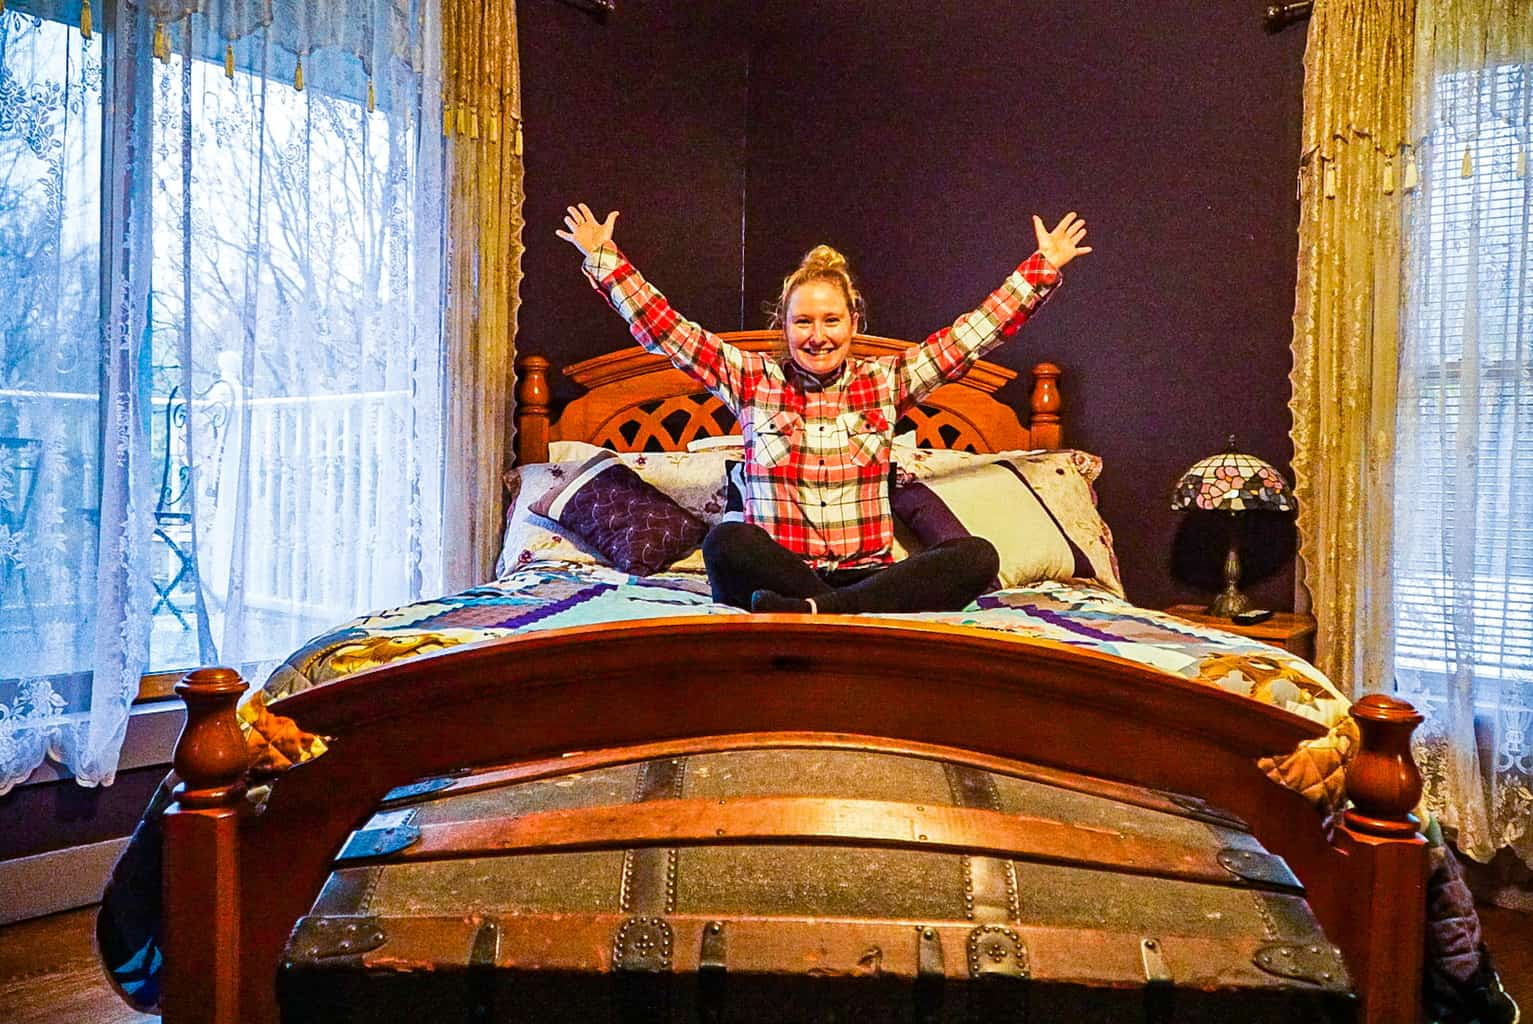 Me on the bed in the Fainting Room at the Fainting Goat Island Inn.